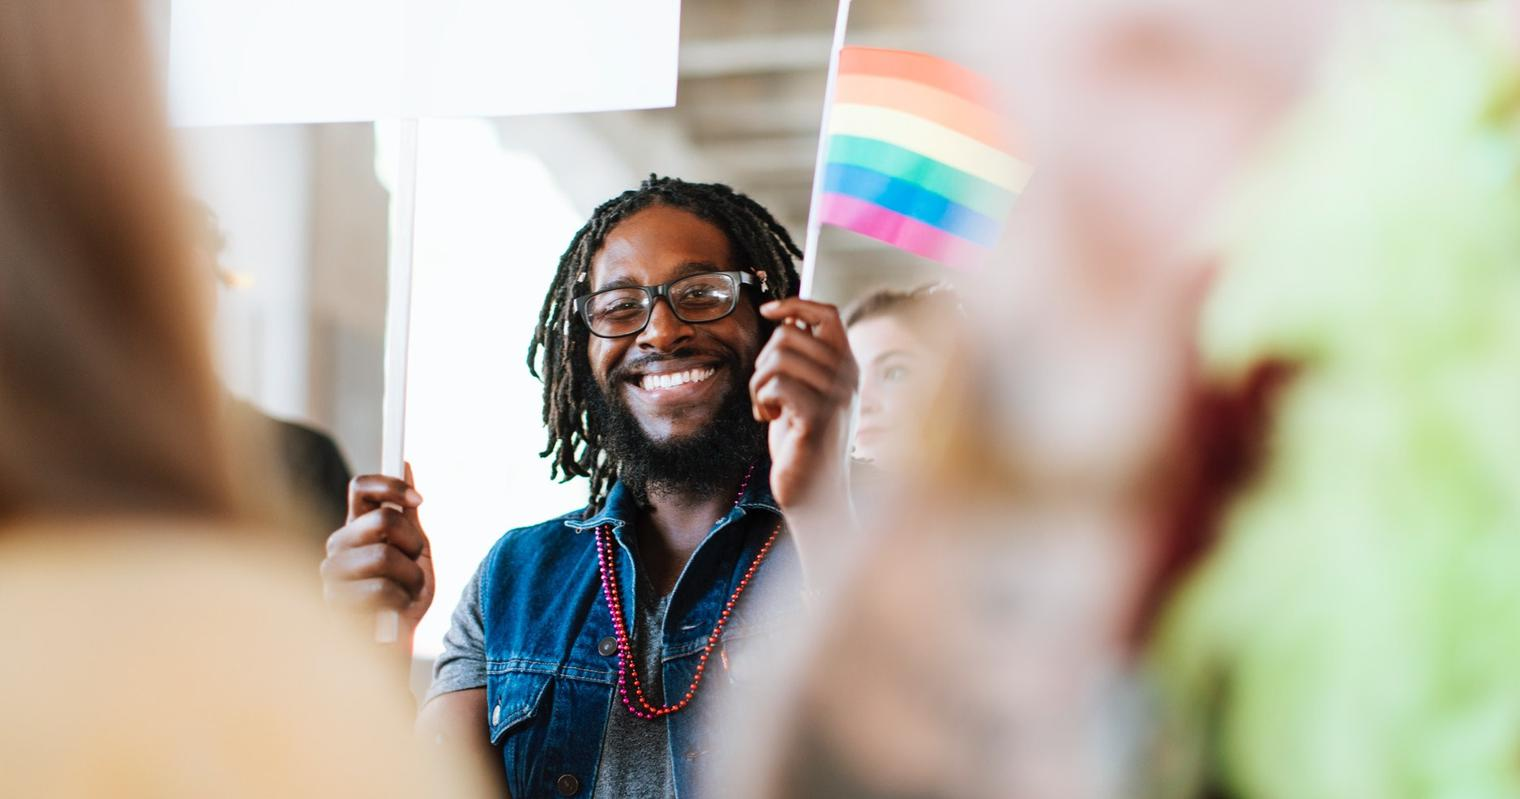 31 Companies With Impactful Initiatives to Support Their LGBTQ Employees